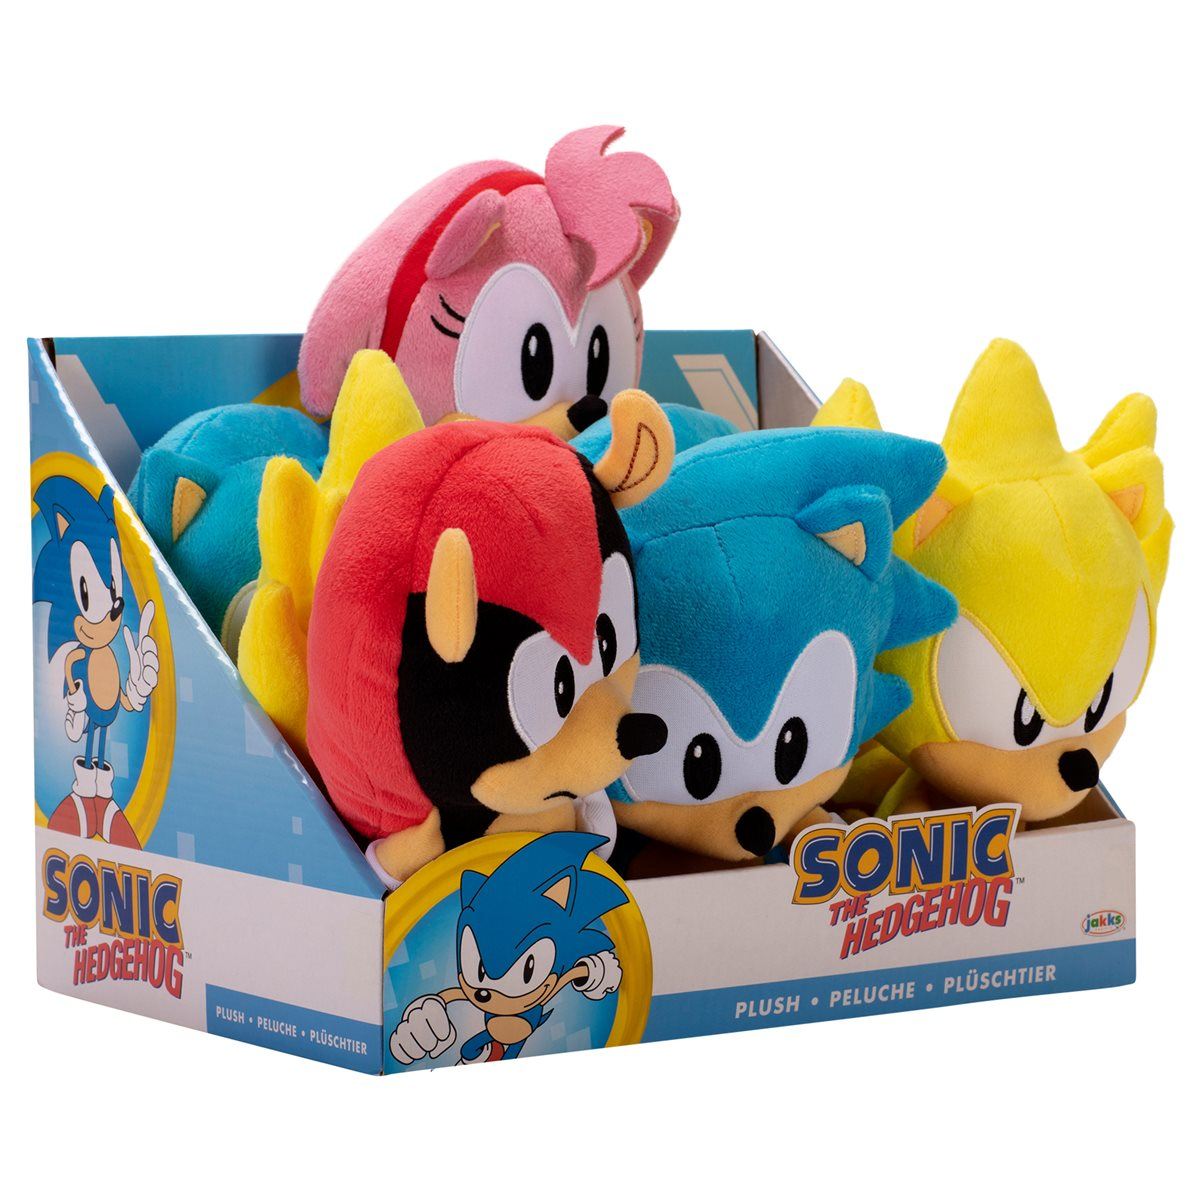 Sonic The Hedgehog 7 Inch Basic Plush Wave 2 Case Entertainment Earth